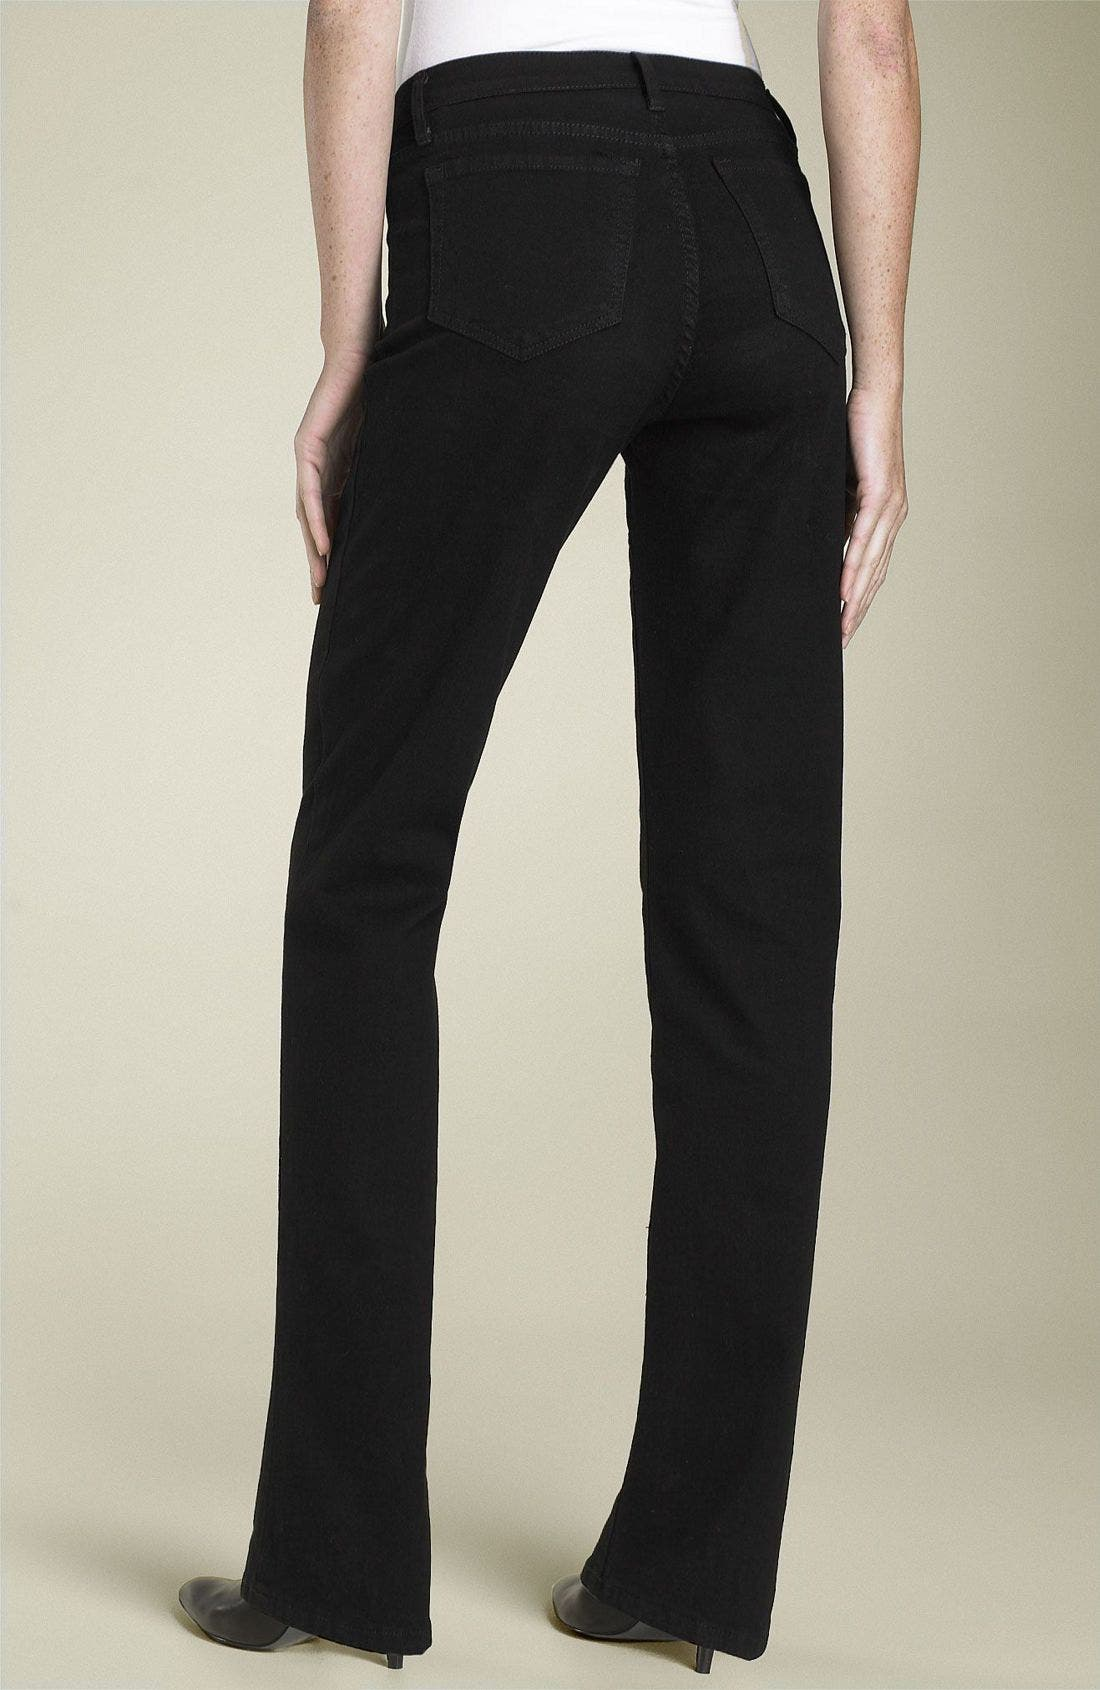 Alternate Image 1 Selected - NYDJ Stretch Straight Leg Jeans (Petite)